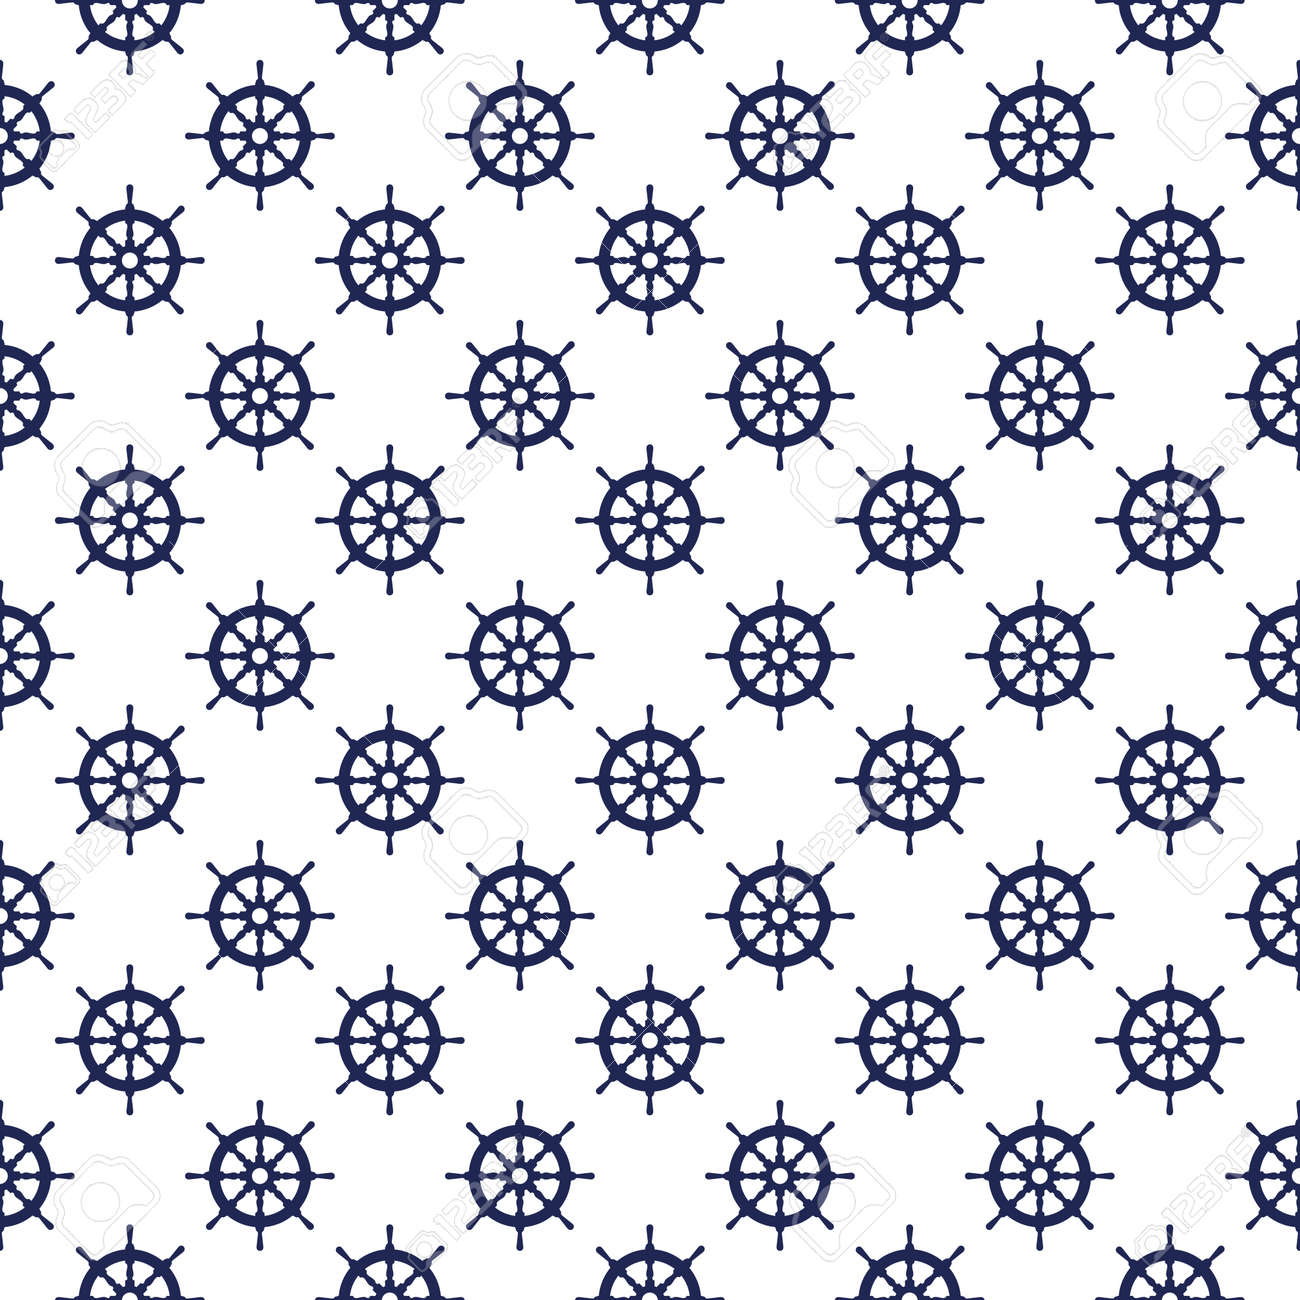 Seamless nautical pattern with steering wheels. Design element for wallpapers - 170794896